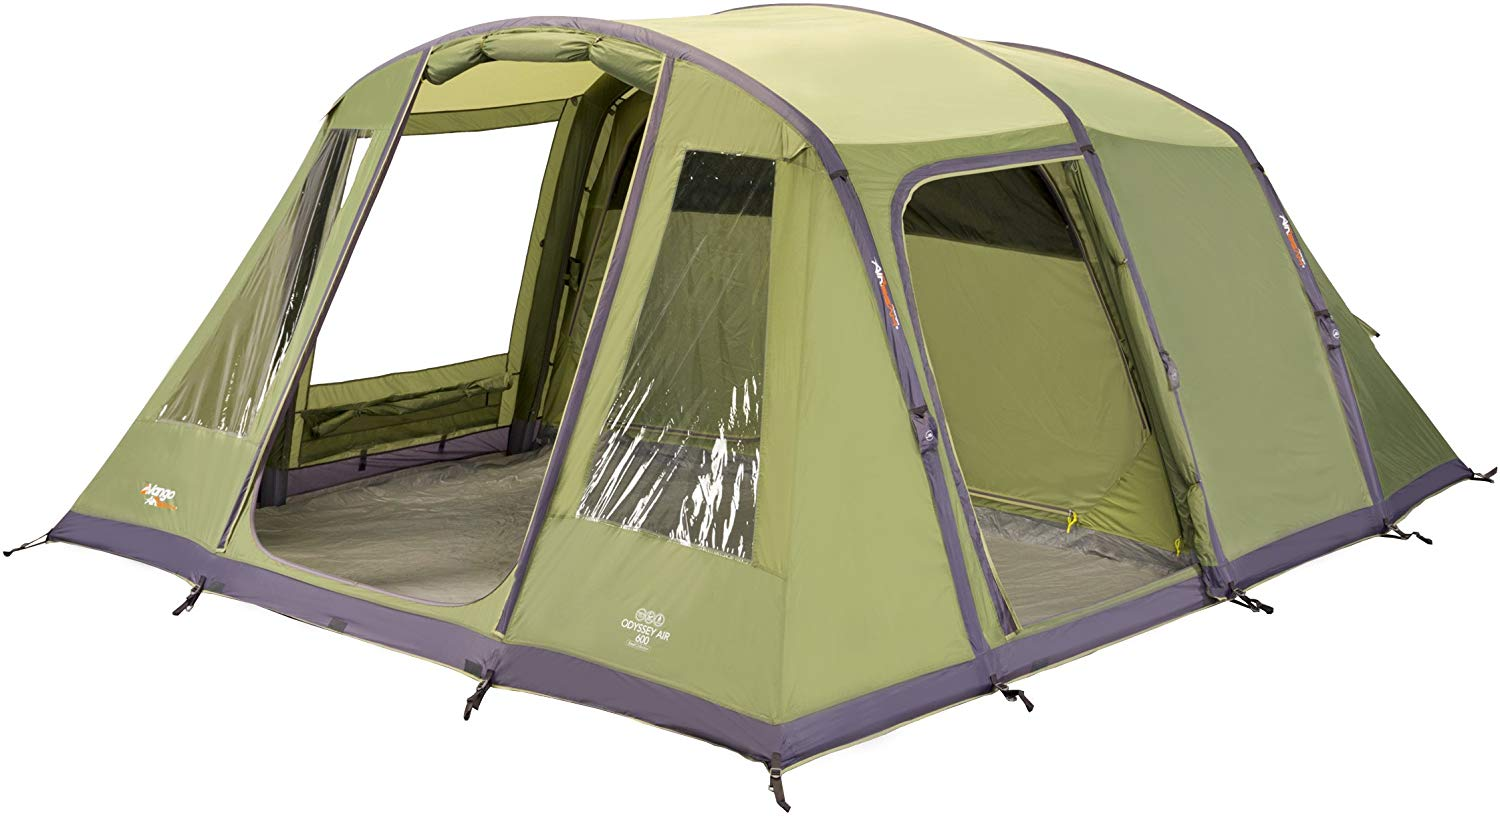 Vango Odyssey Inflatable Family Tunnel Tent – £275.84